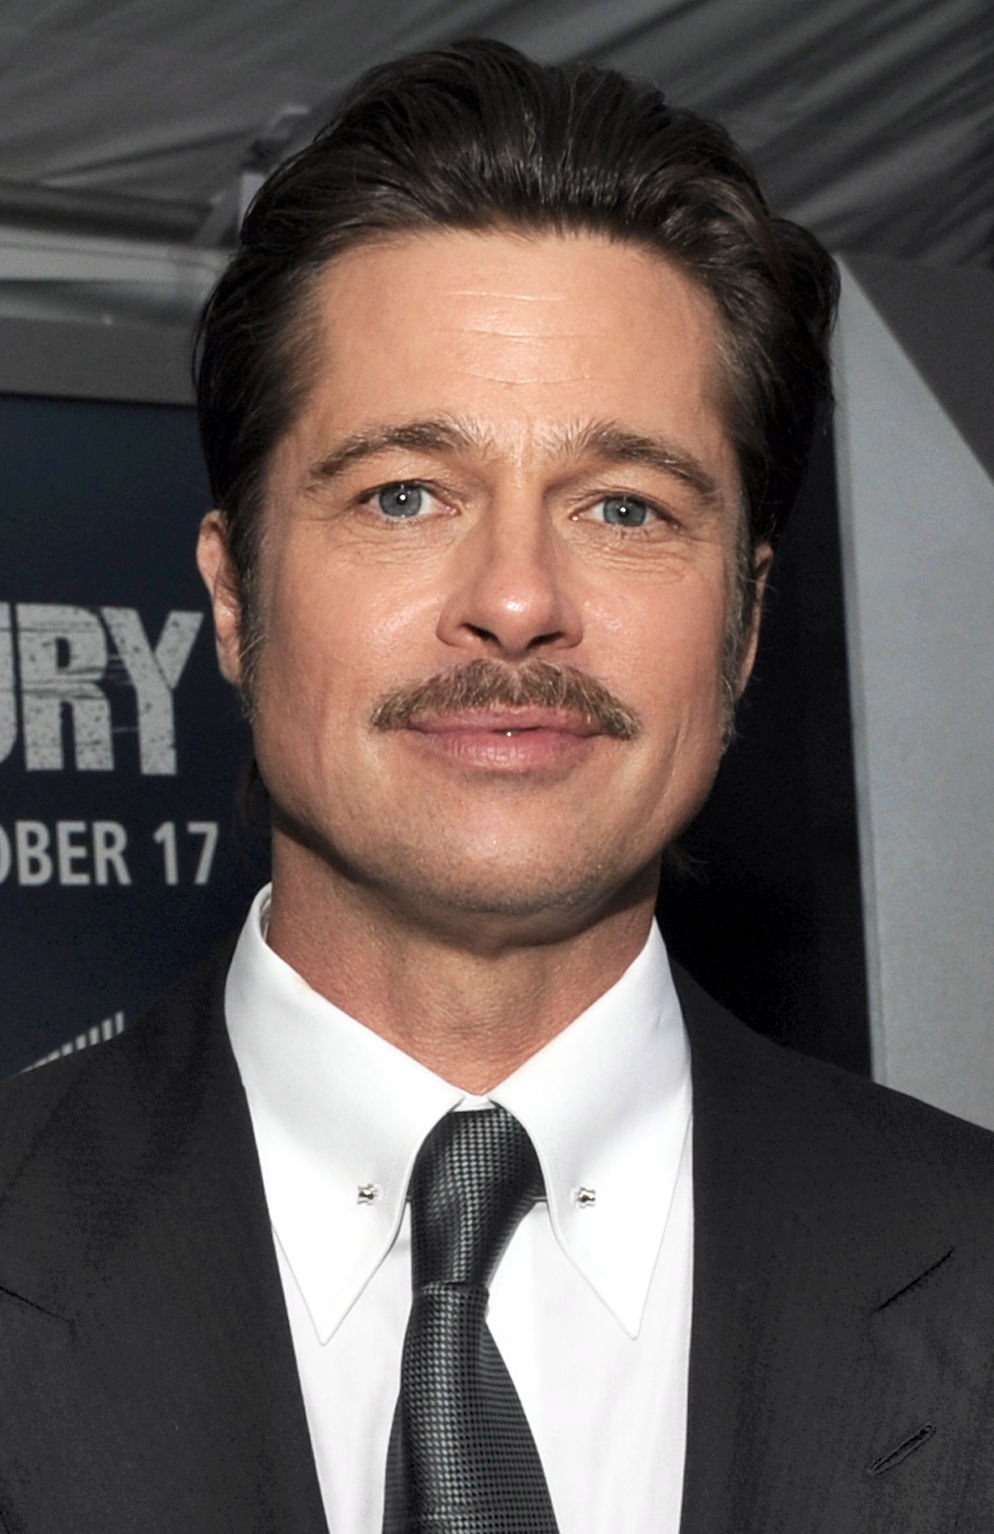 Photo of Brad Pitt: American actor